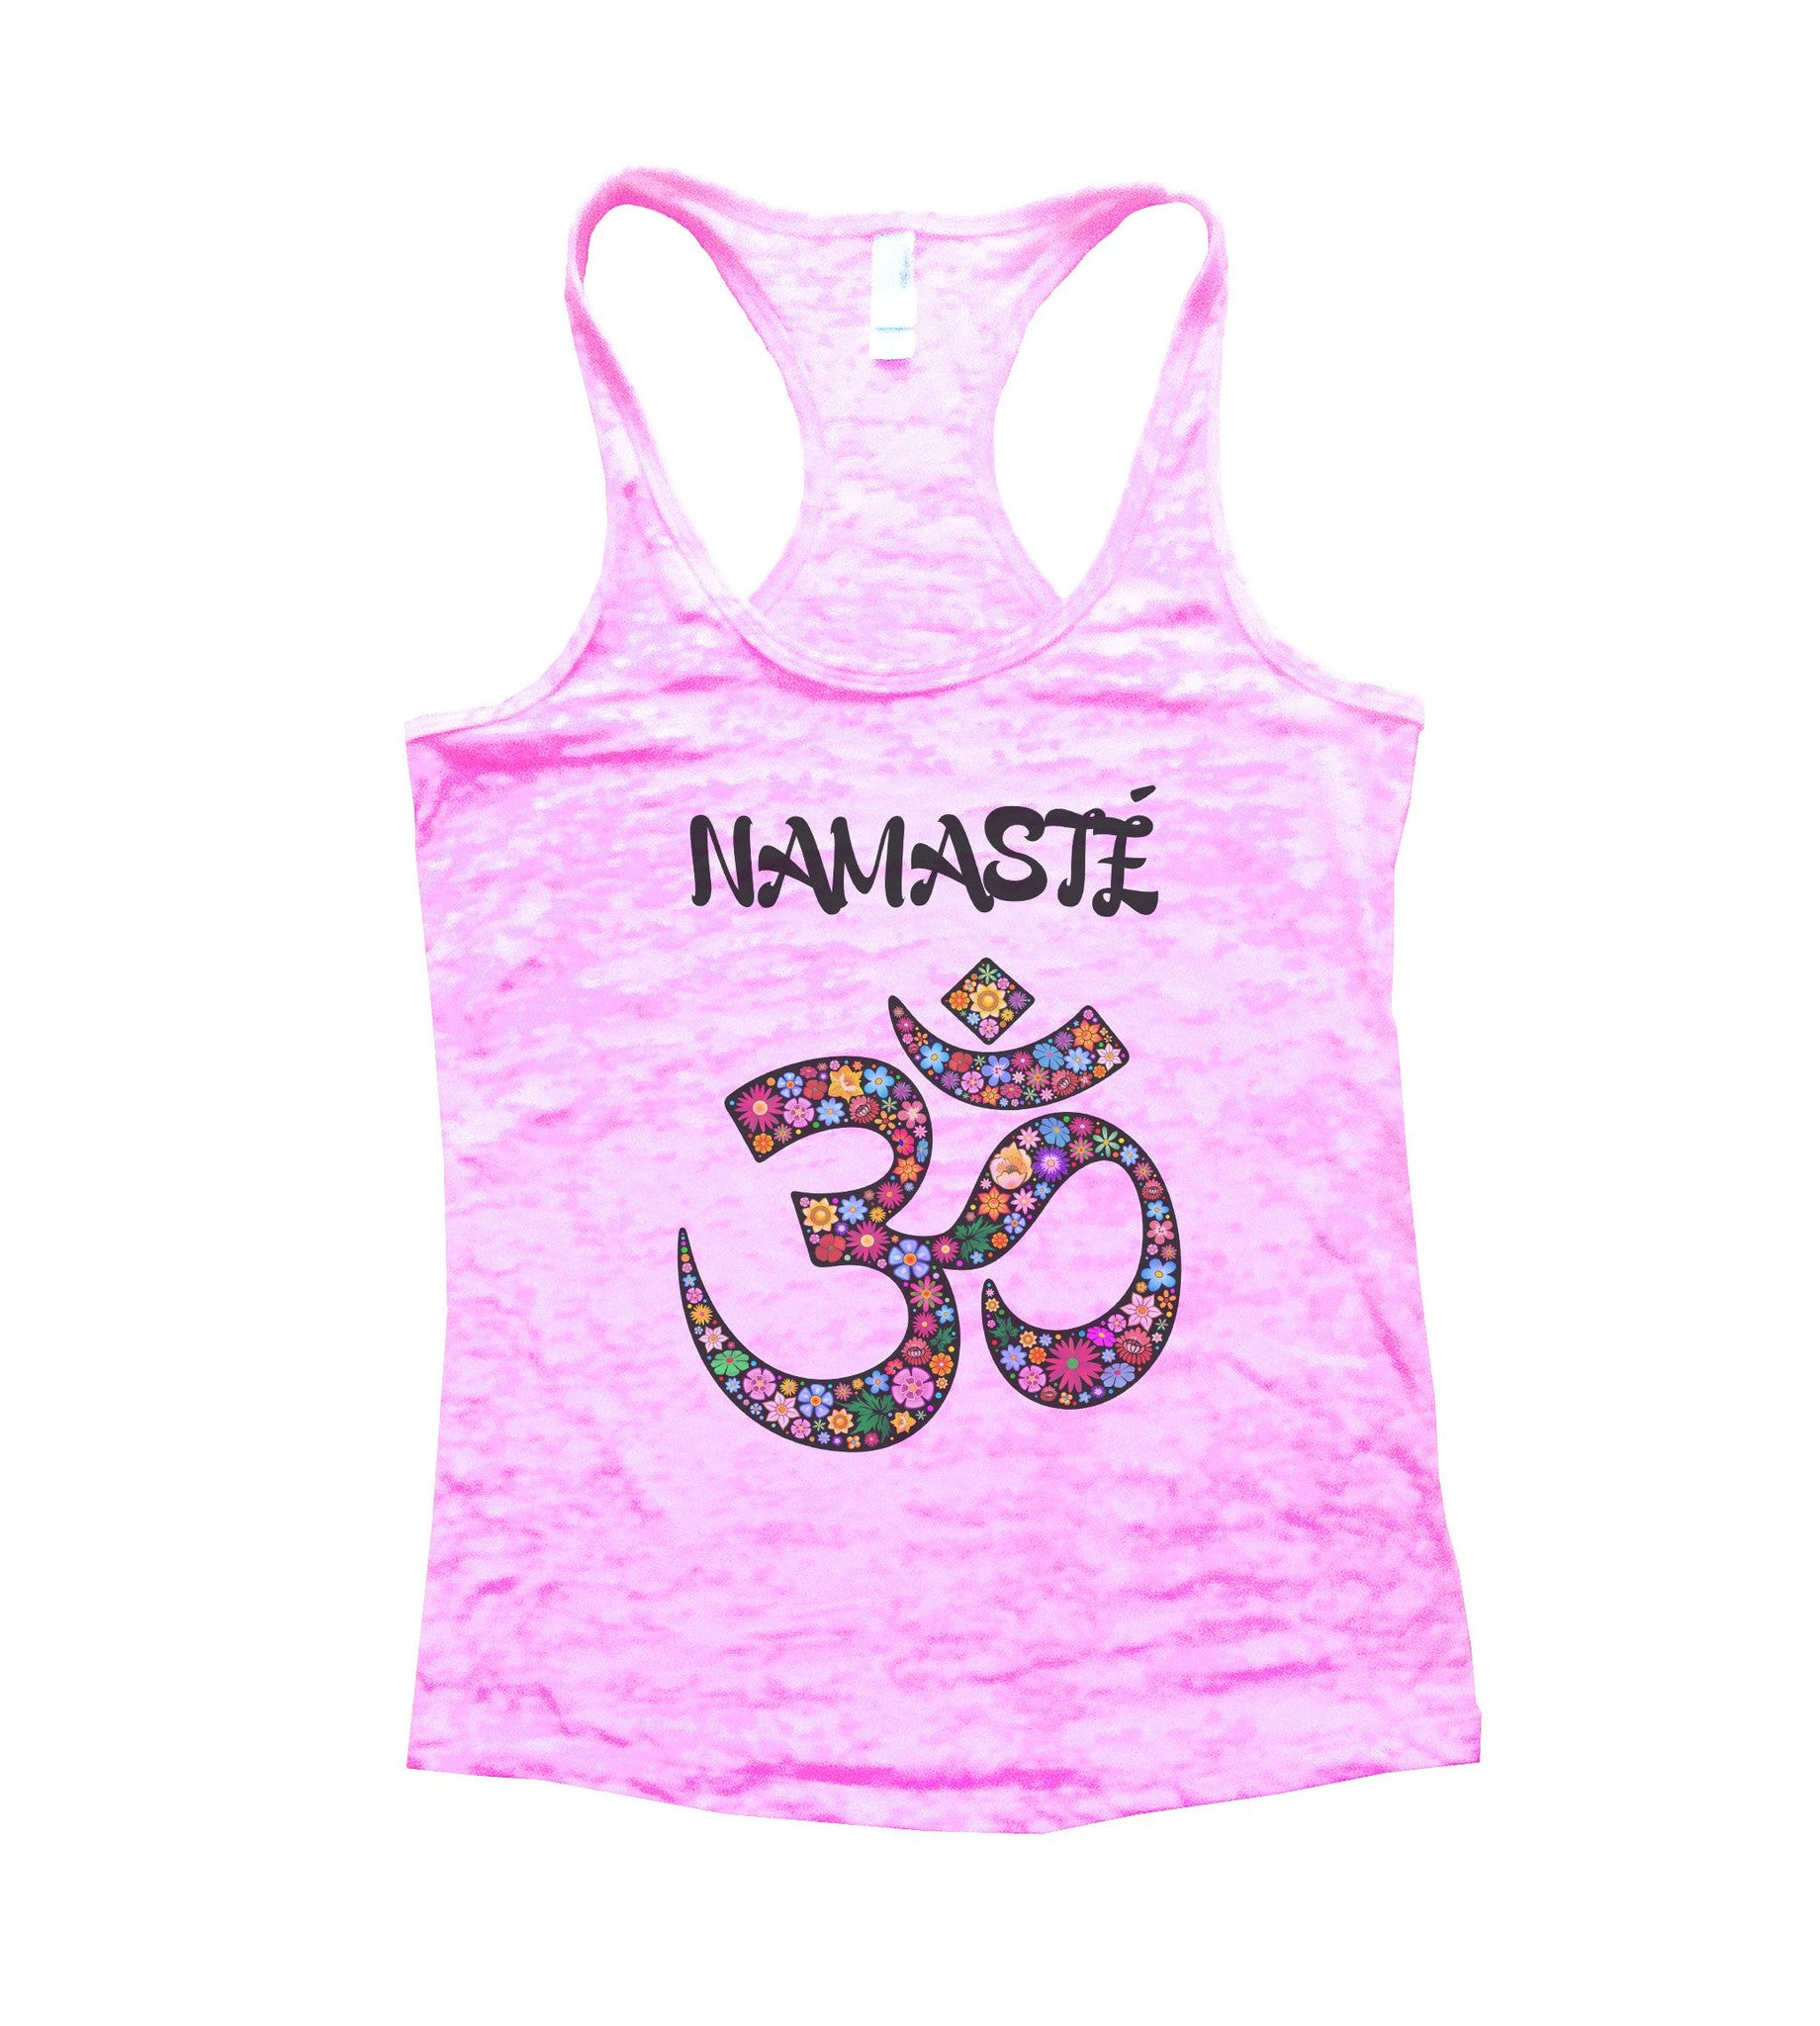 Namaste Burnout Tank Top By BurnoutTankTops.com - 713 - Funny Shirts Tank Tops Burnouts and Triblends  - 2